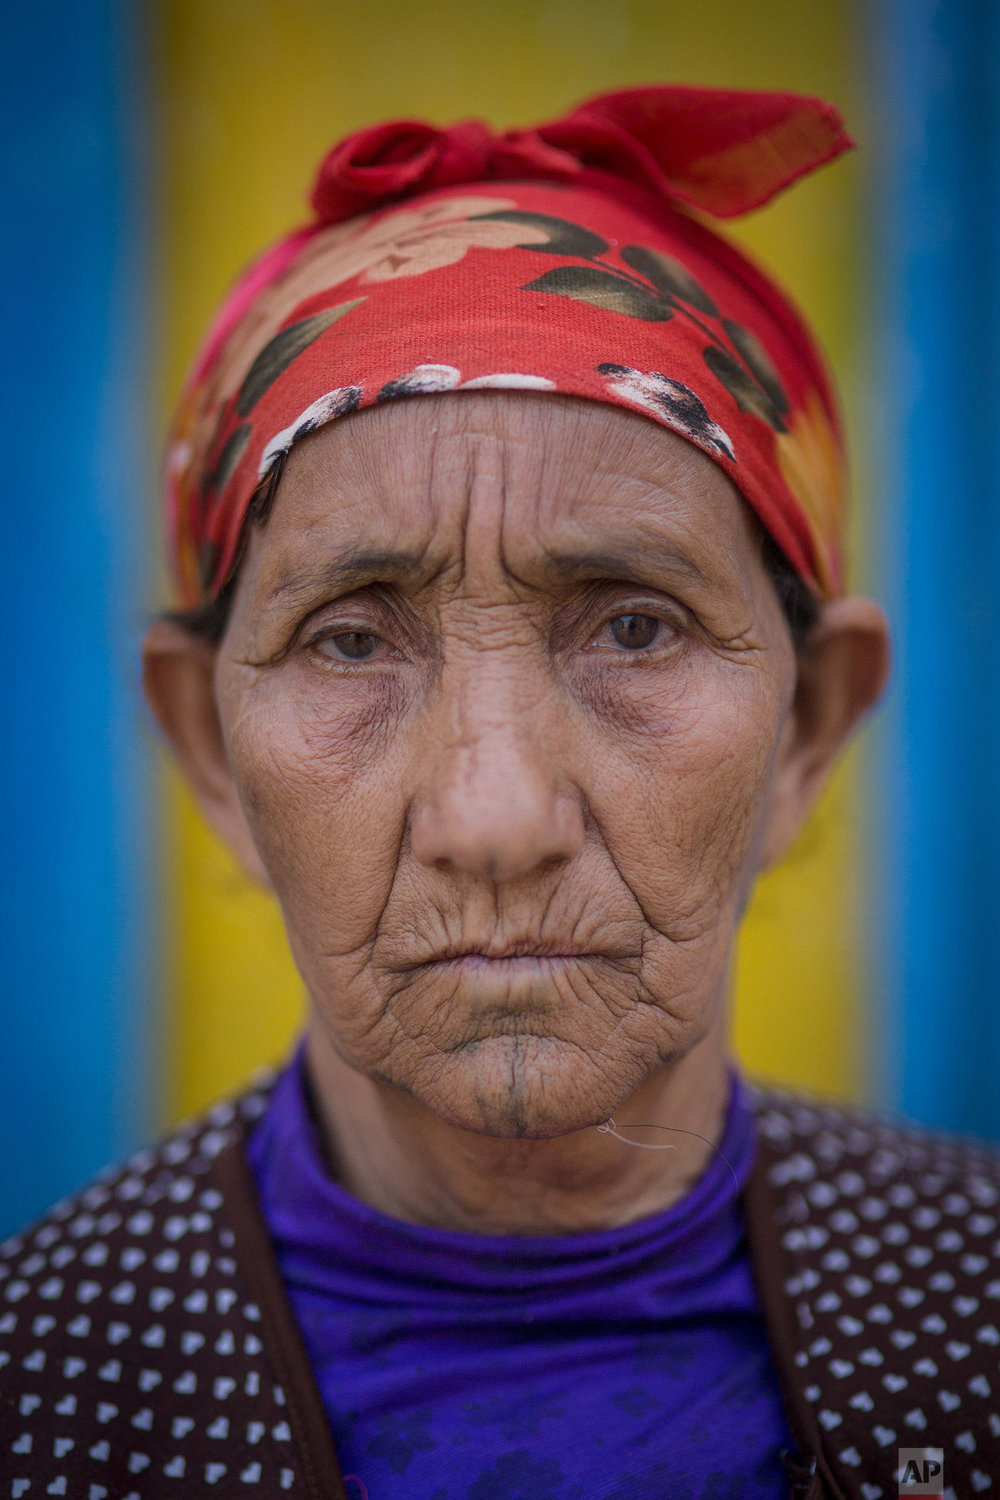 In this Sunday, Oct. 13, 2018 photo, Hadda Saghir, 60, poses for a portrait displaying her face tattoo, in the Middle Atlas town of Tizi N'Isly, near Béni Mellal, central Morocco. (AP Photo/Mosa'ab Elshamy)